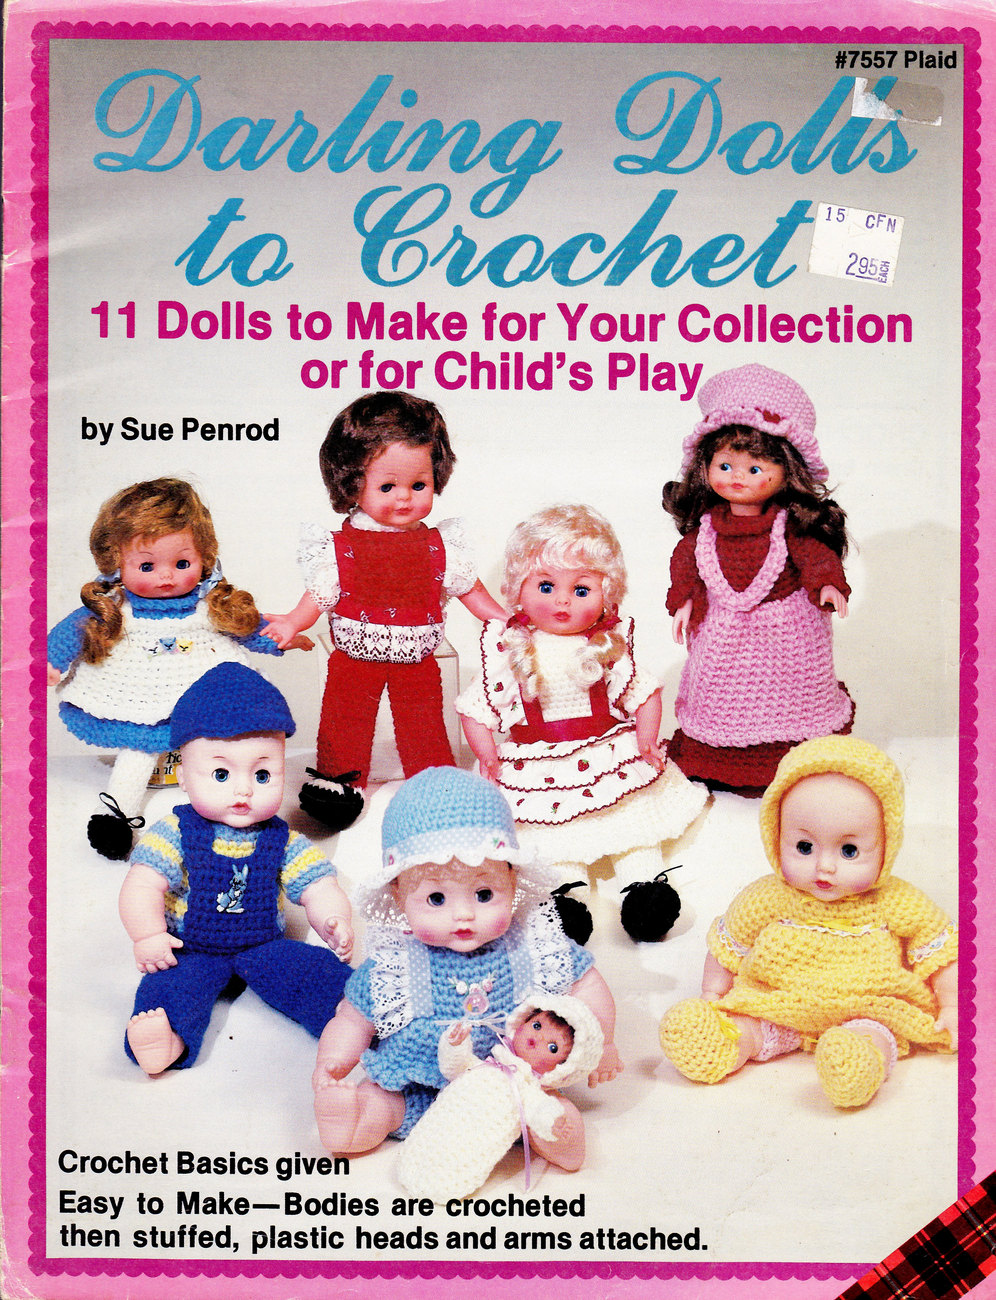 Primary image for DARLING DOLLS TO CROCHET DOLL COLLECTION OR FOR PLAY